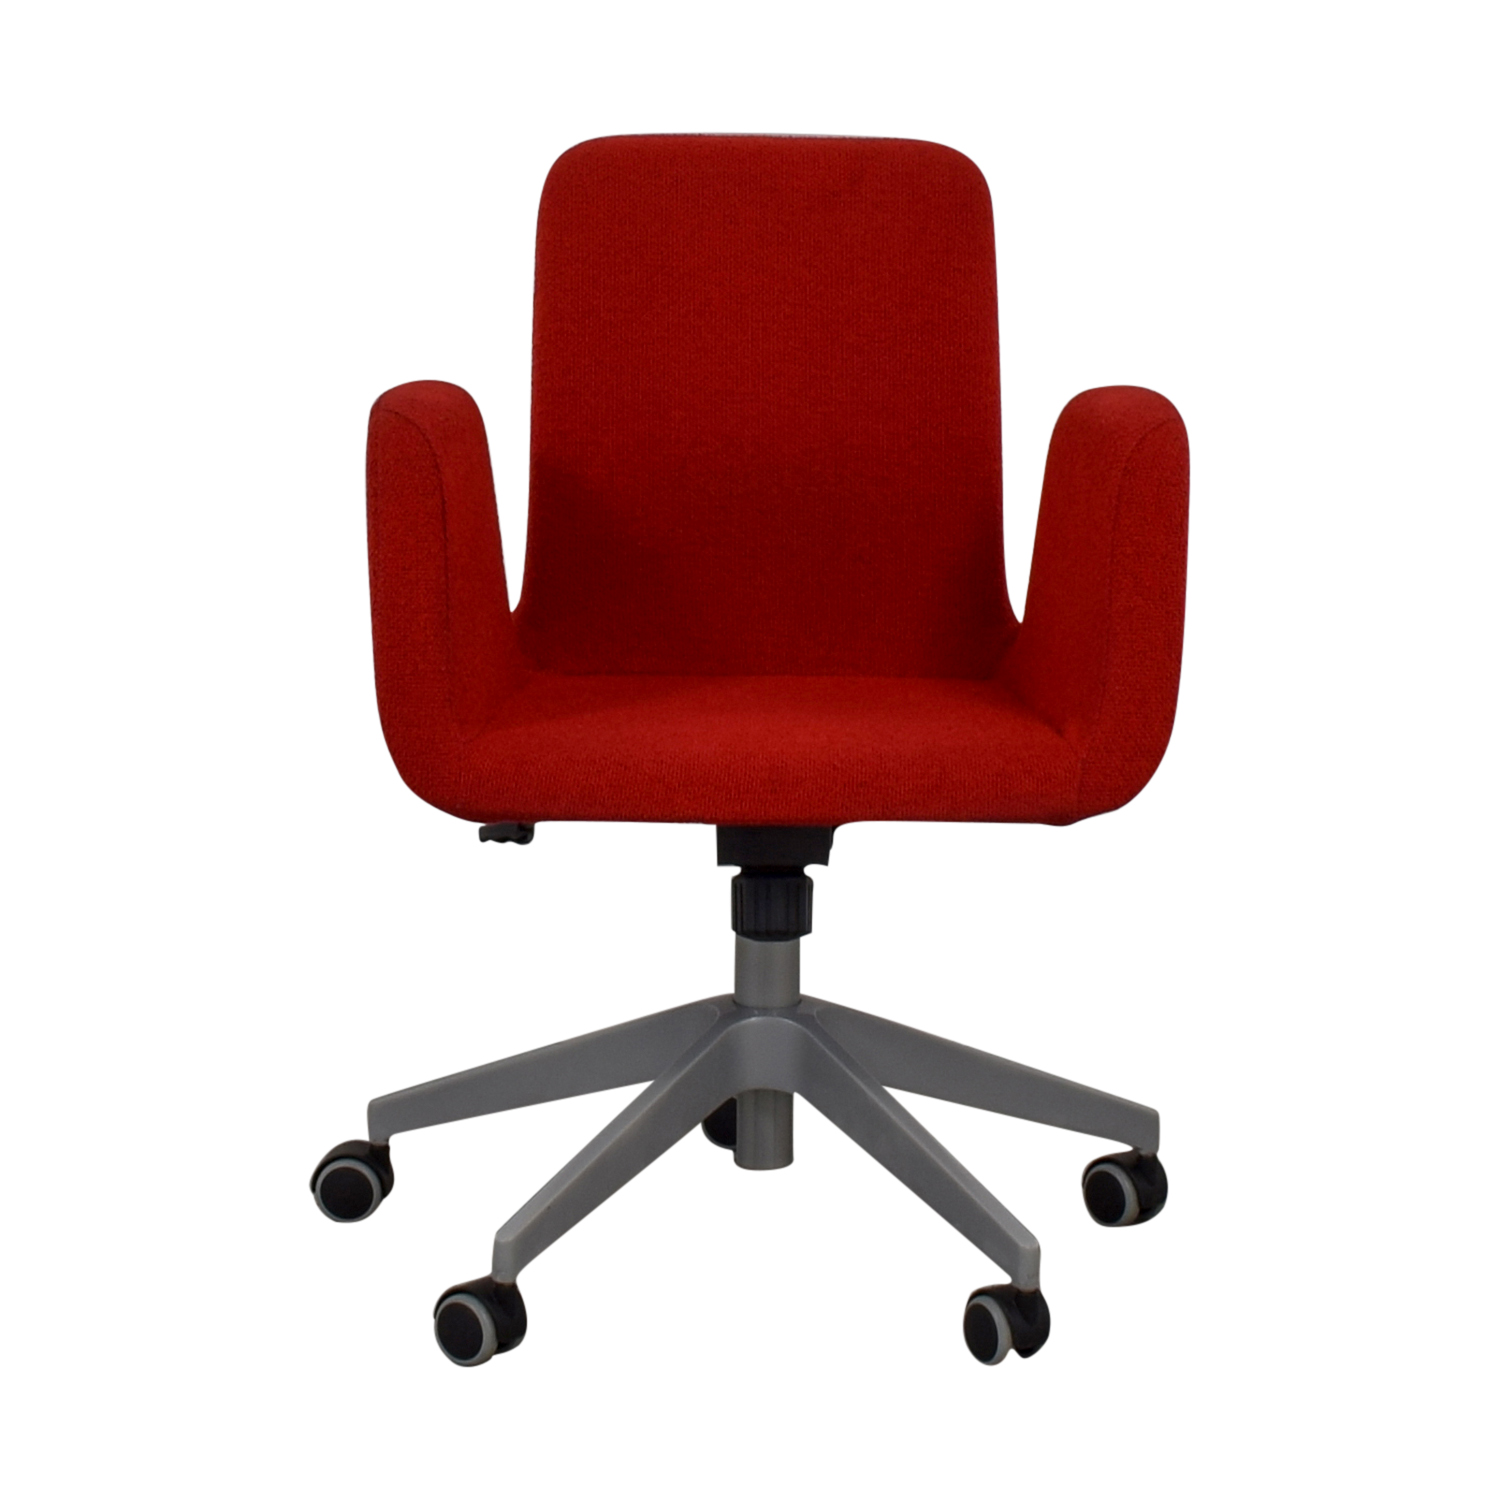 Chair Price 79 Off Ikea Ikea Patrik Red Rolling Desk Chair Chairs